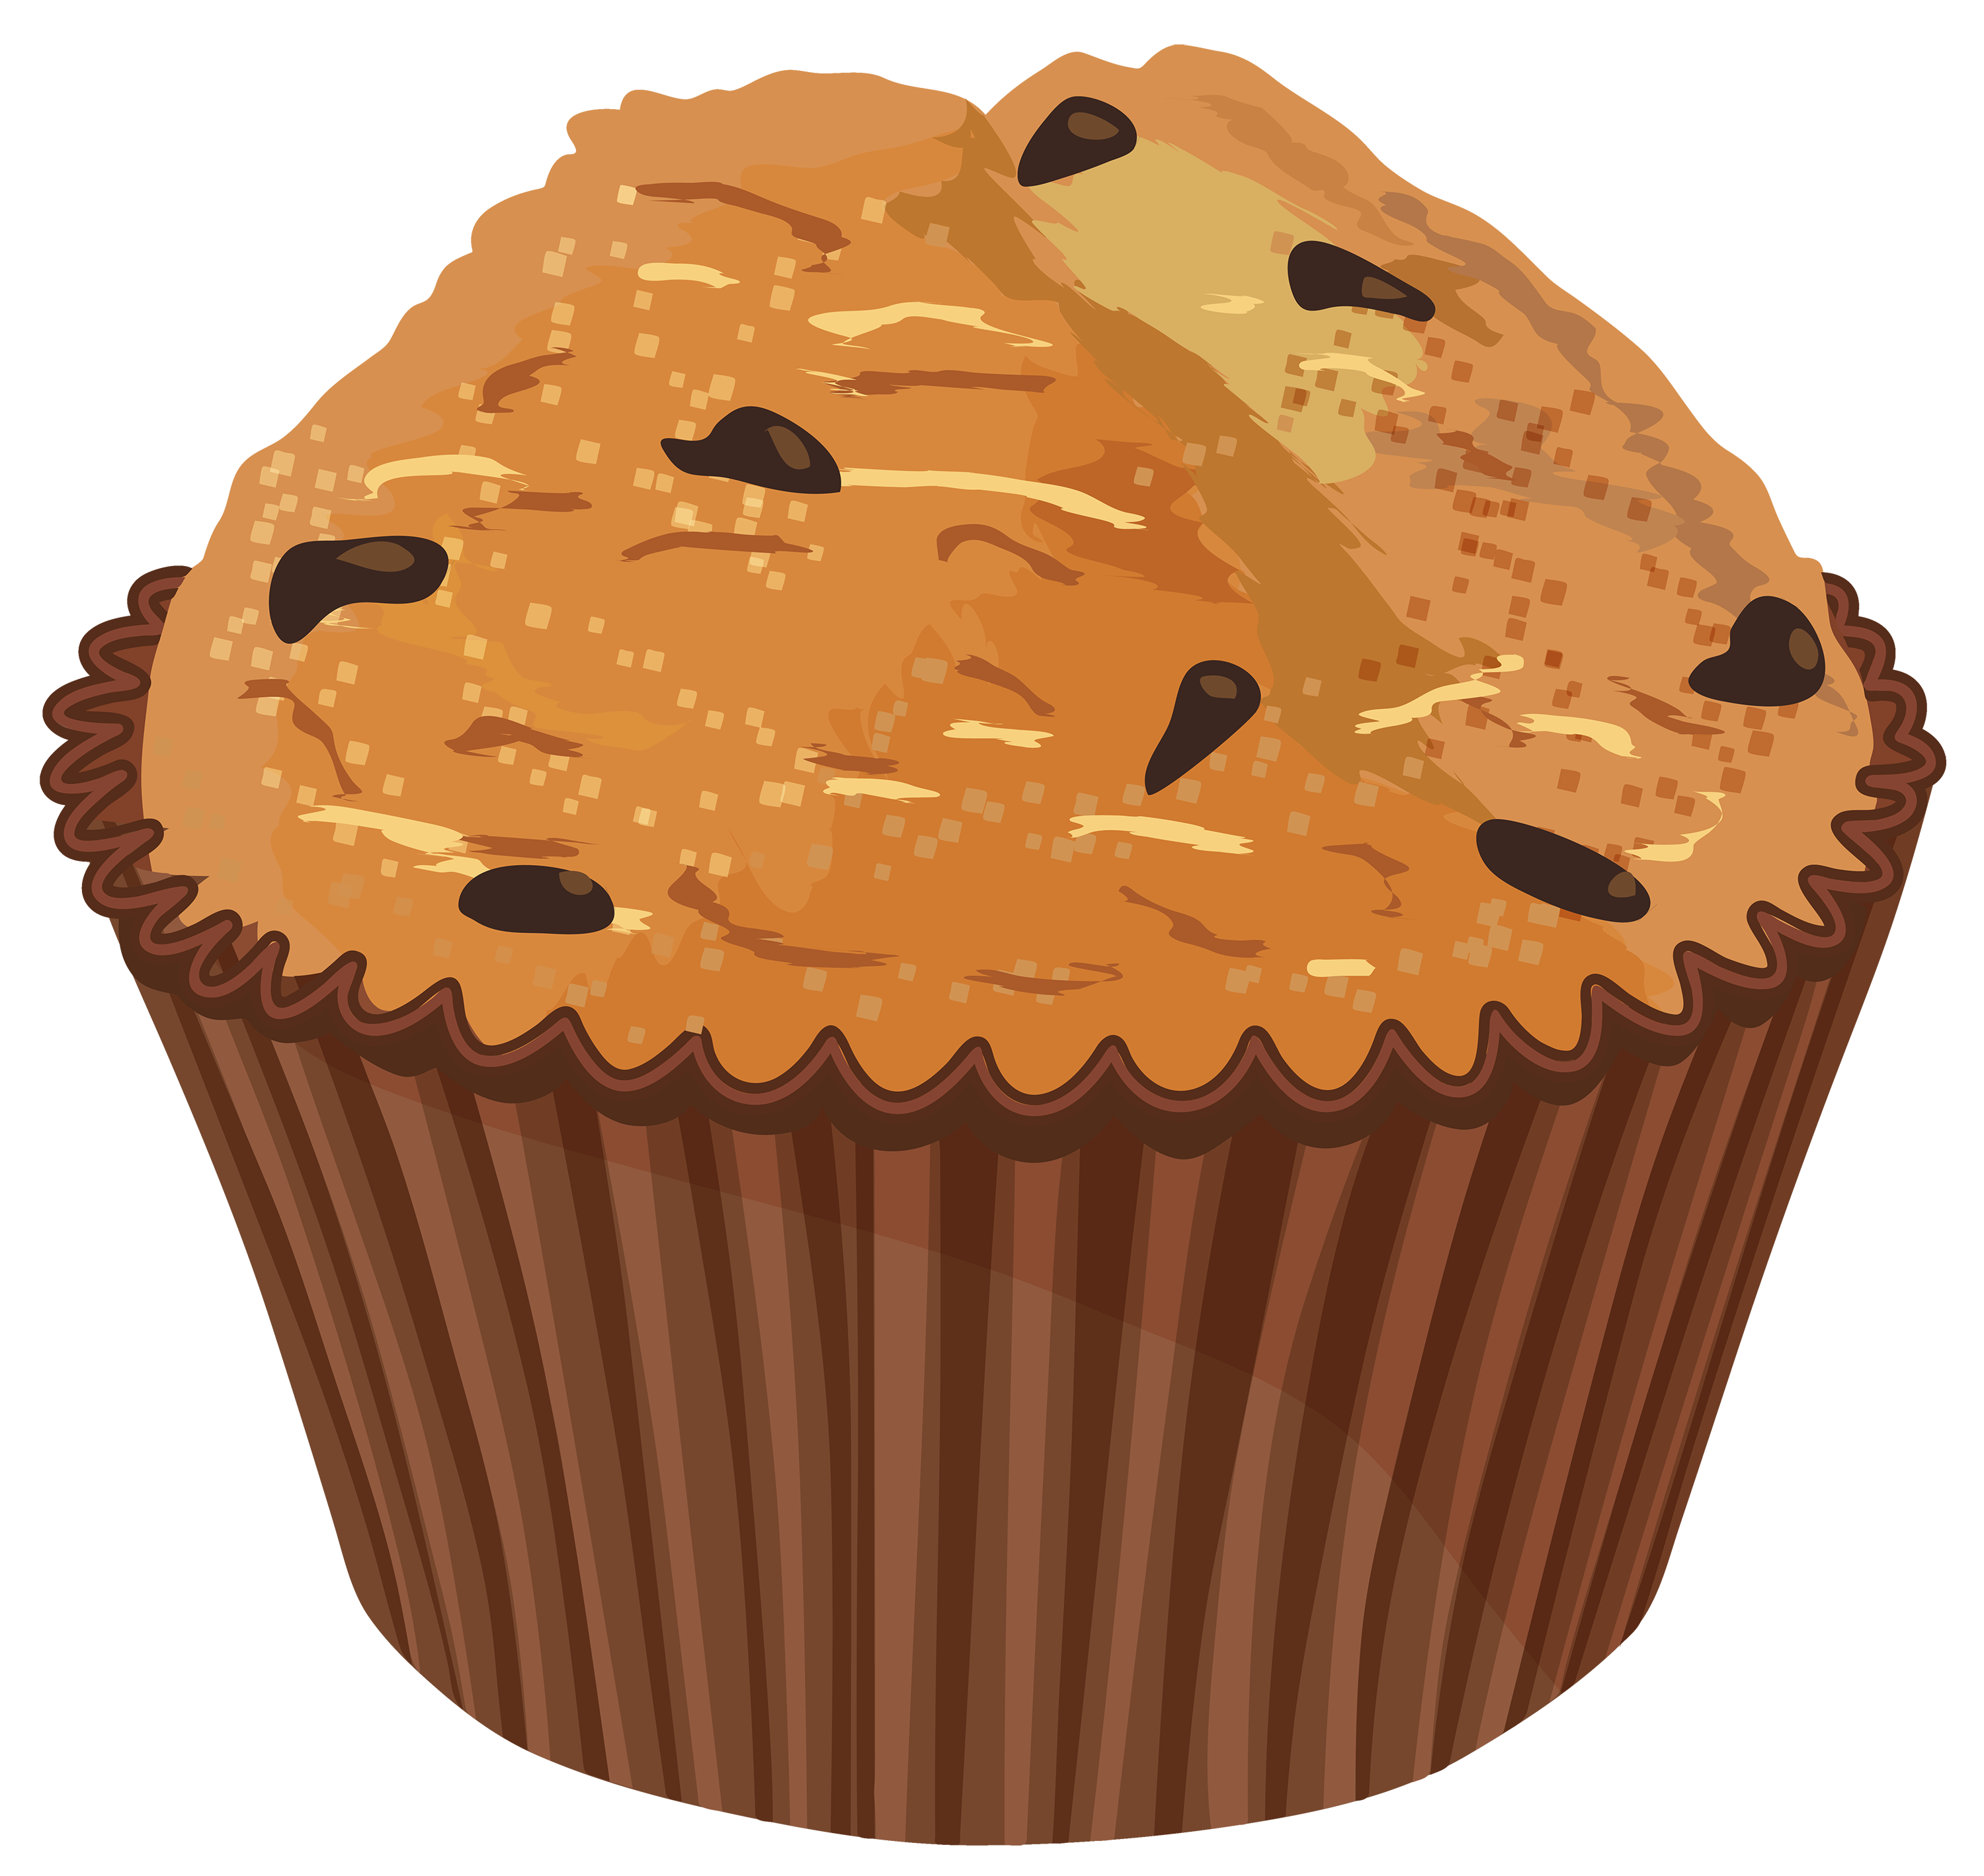 Muffin clipart. Png best web